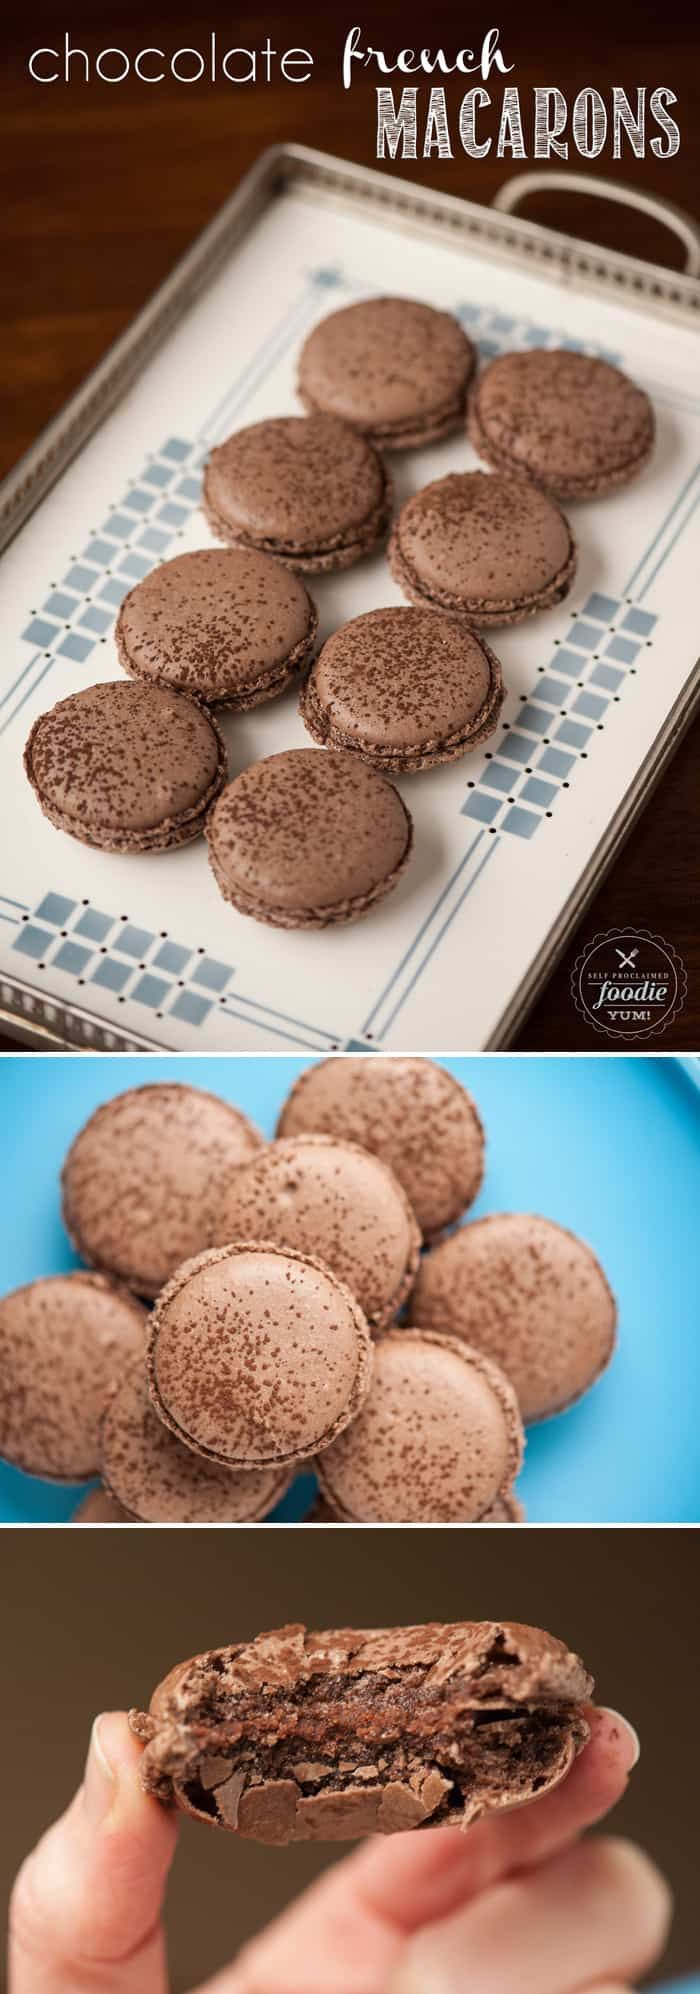 Photo of Macarons franceses de chocolate